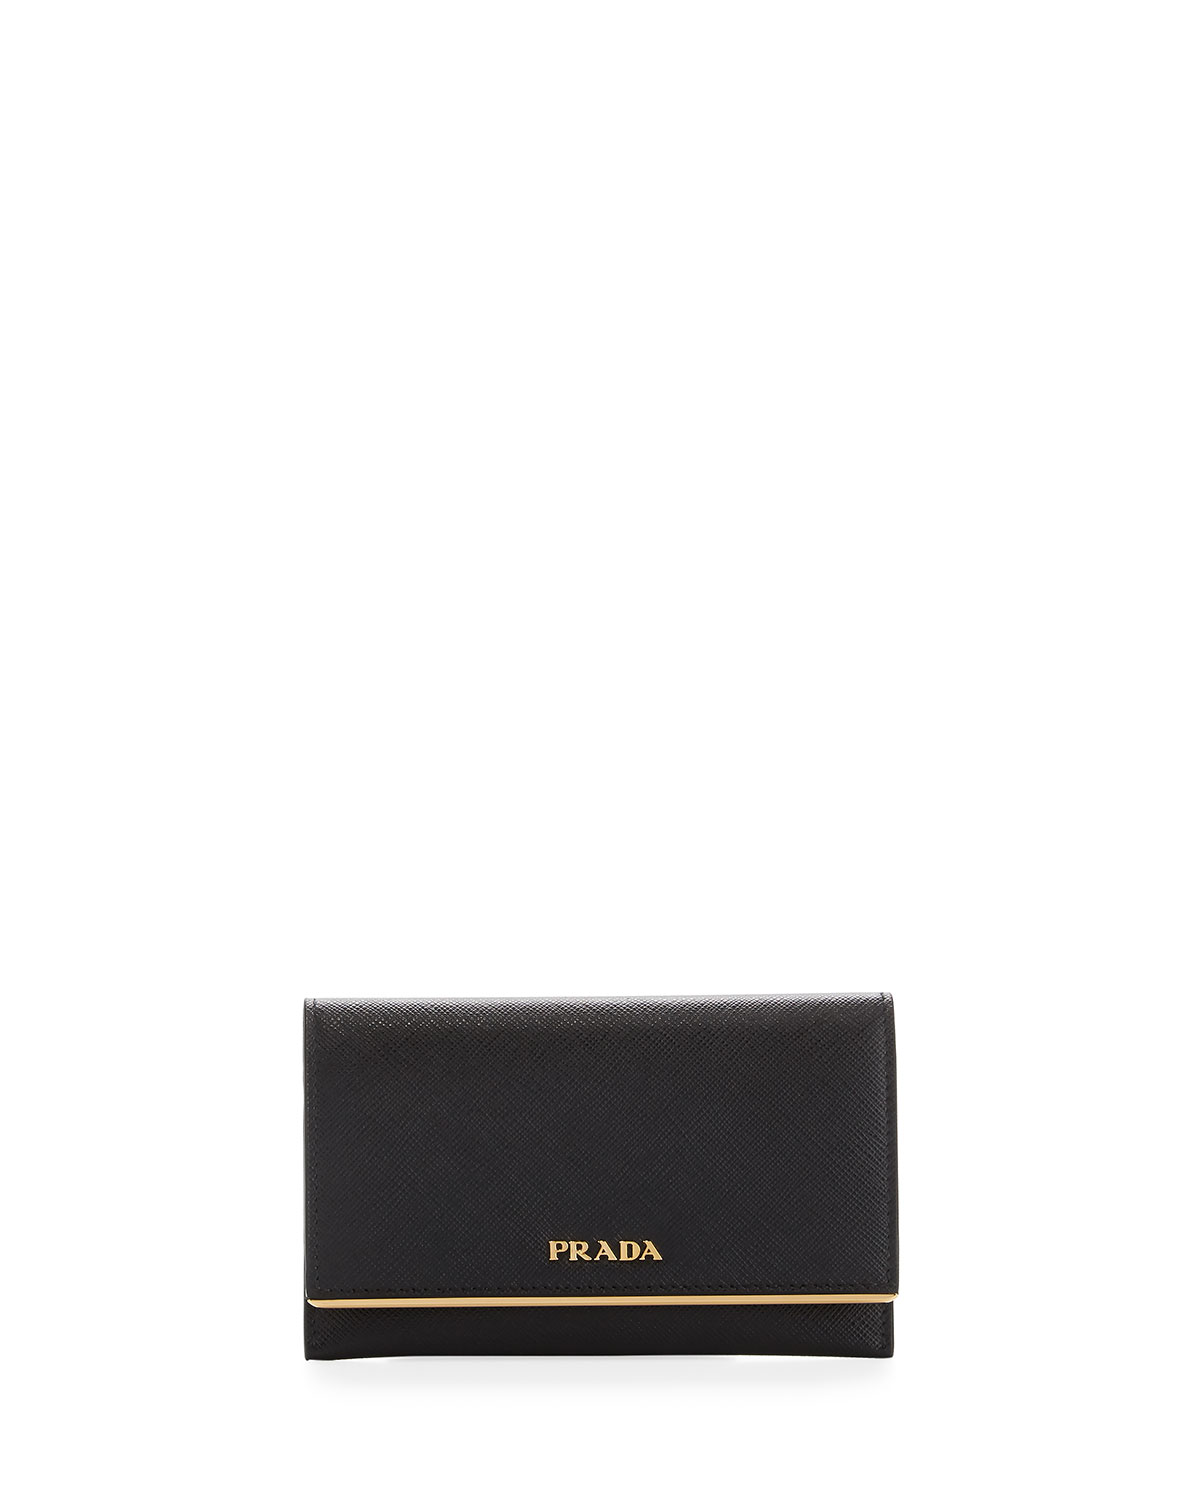 5afec42b221abb Prada Saffiano Leather Bar-Flap French Wallet | Neiman Marcus